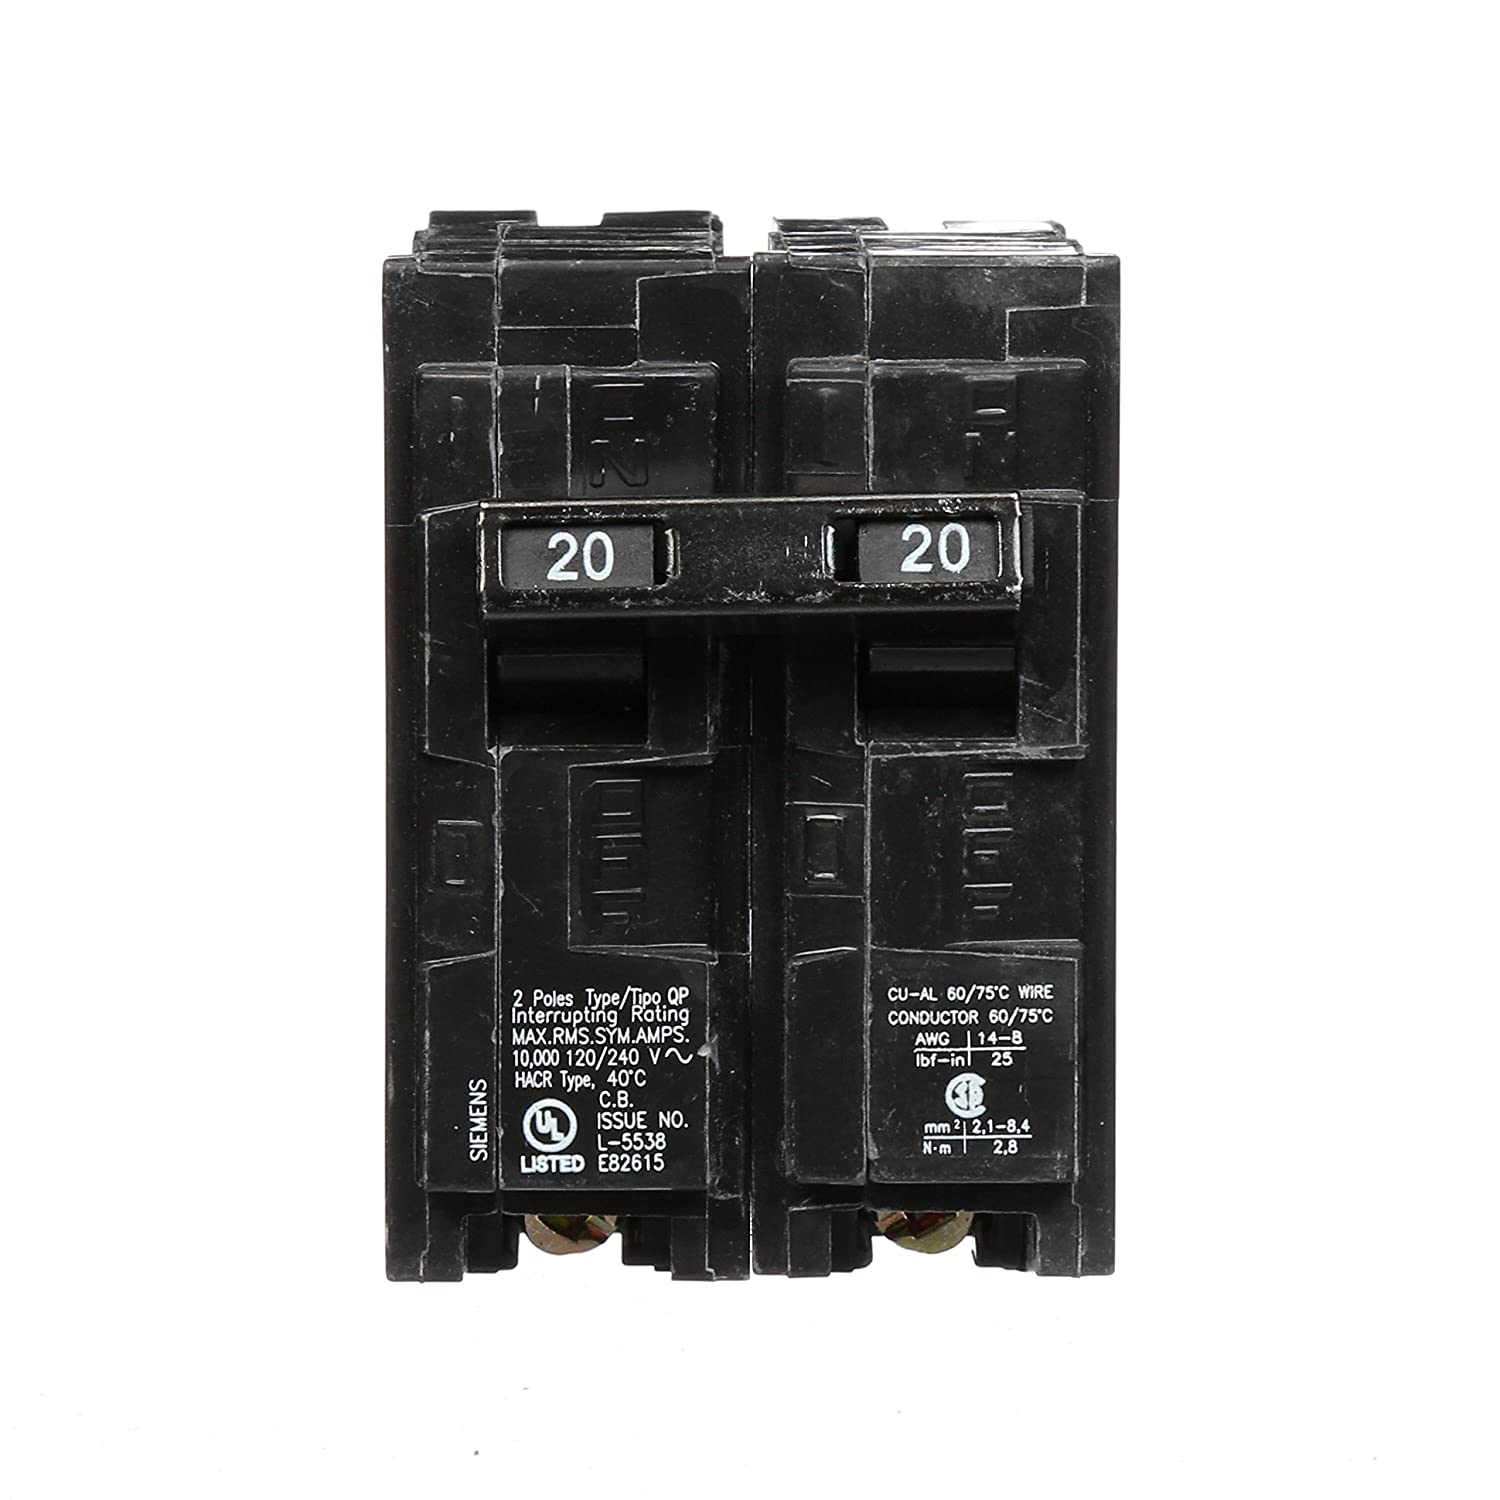 Q220 20-Amp Double Pole Type QP Circuit Breaker - - Amazon.com